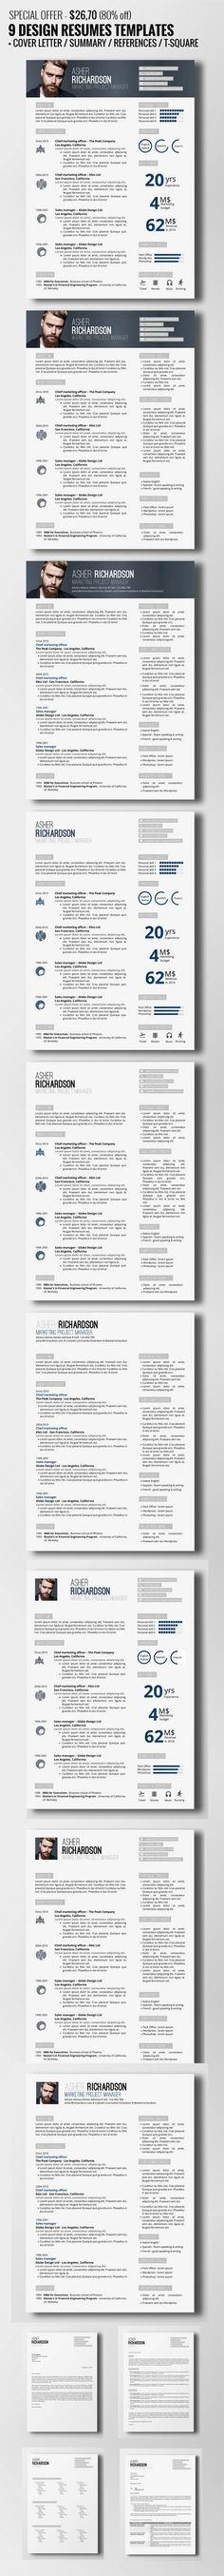 435 best Resume images on Pinterest Resume design, Design resume - cover letter templates for resume